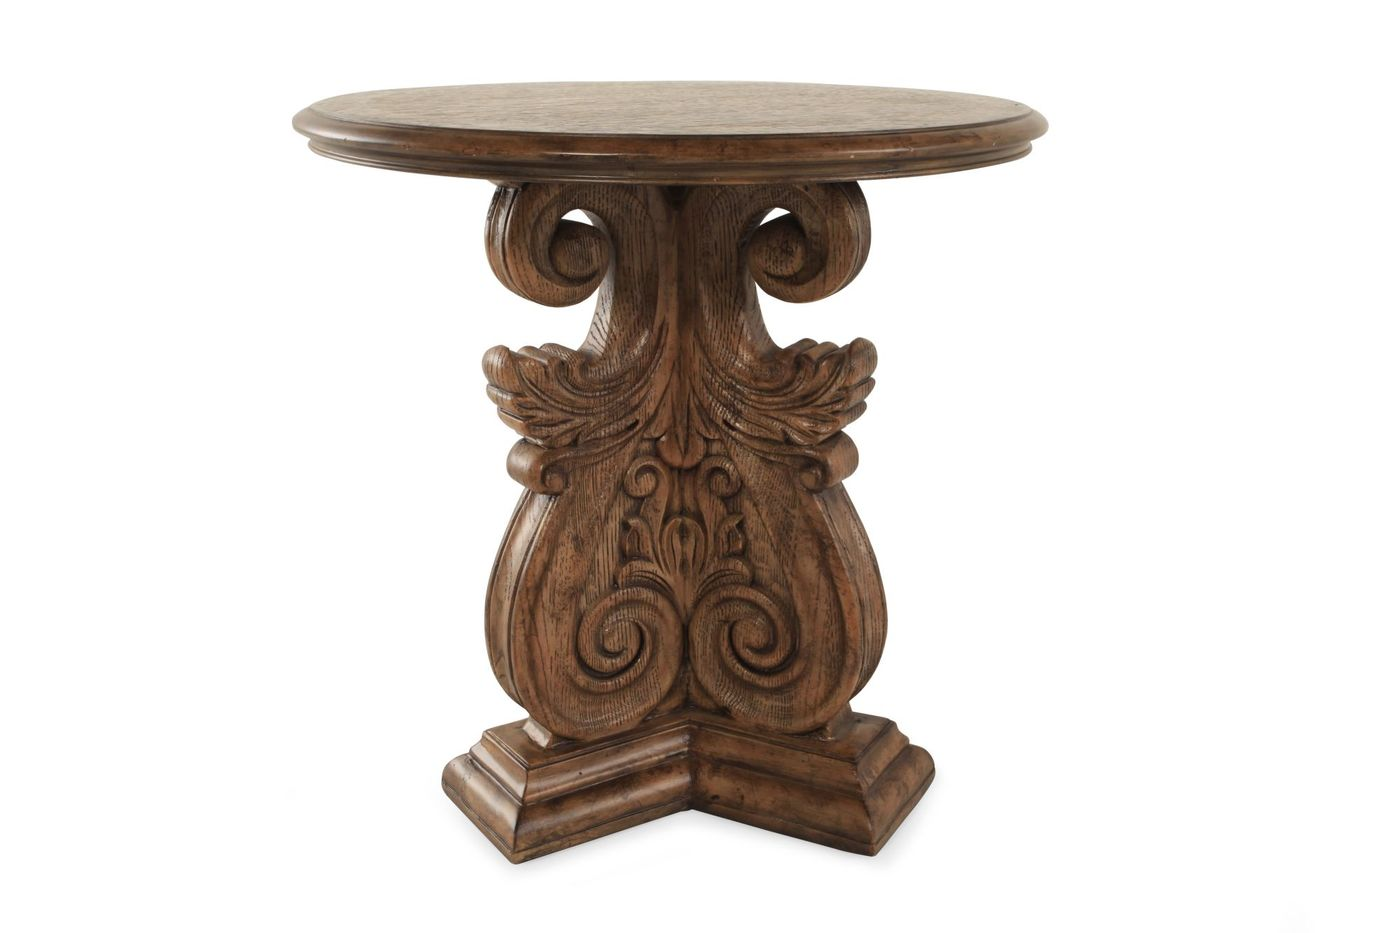 carved base traditional accent table antique brown mathis hook wood wine holder white round yellow home accessories outdoor sofa dining room and chair sets patio drink slim rack